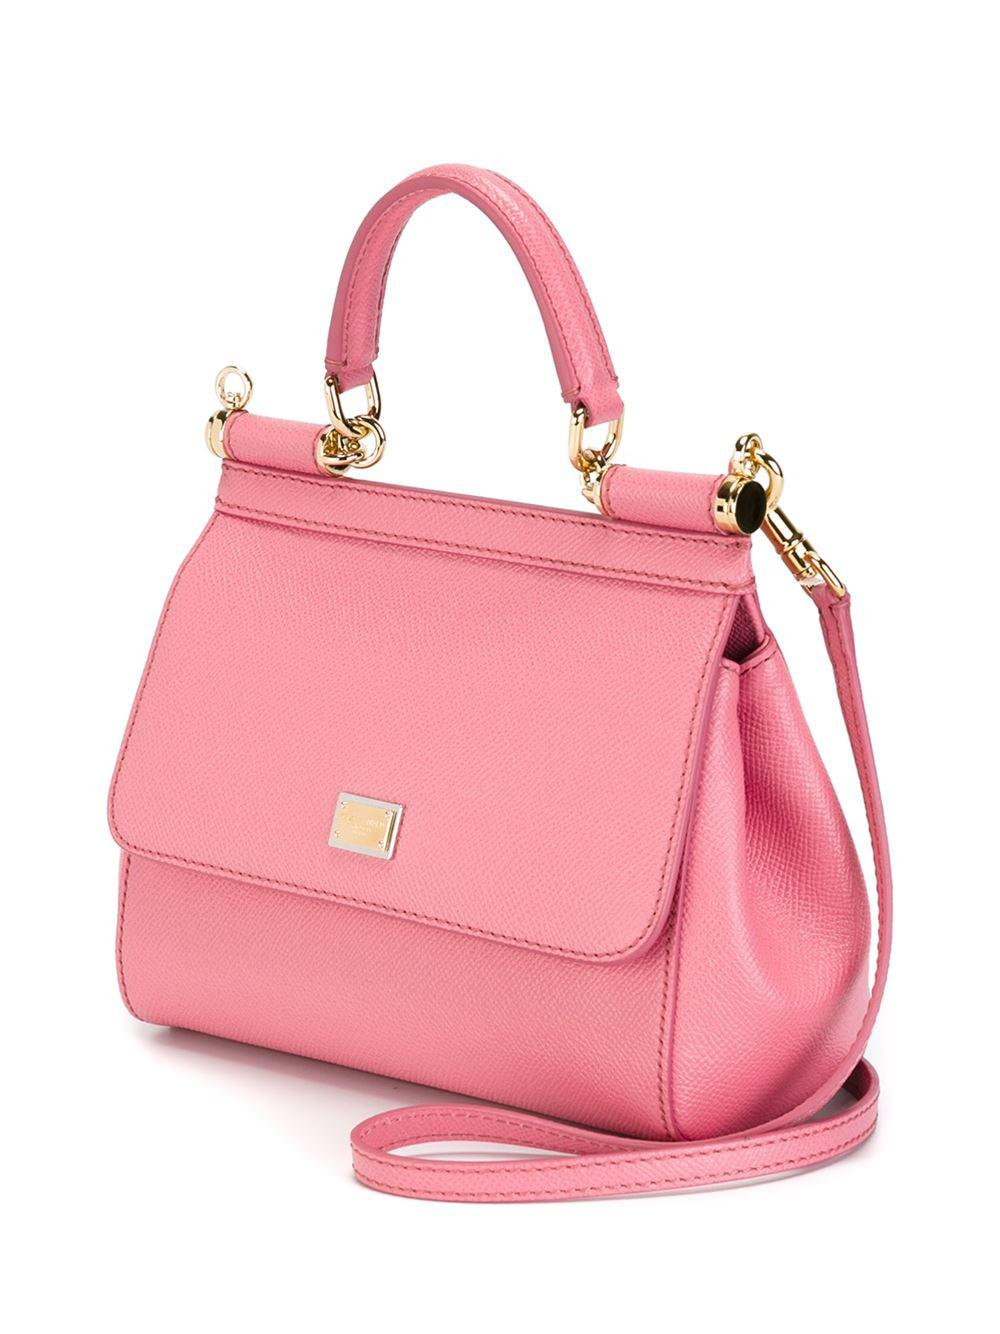 Dolce & Gabbana Leather Small 'sicily' Tote in Pink & Purple (Pink)